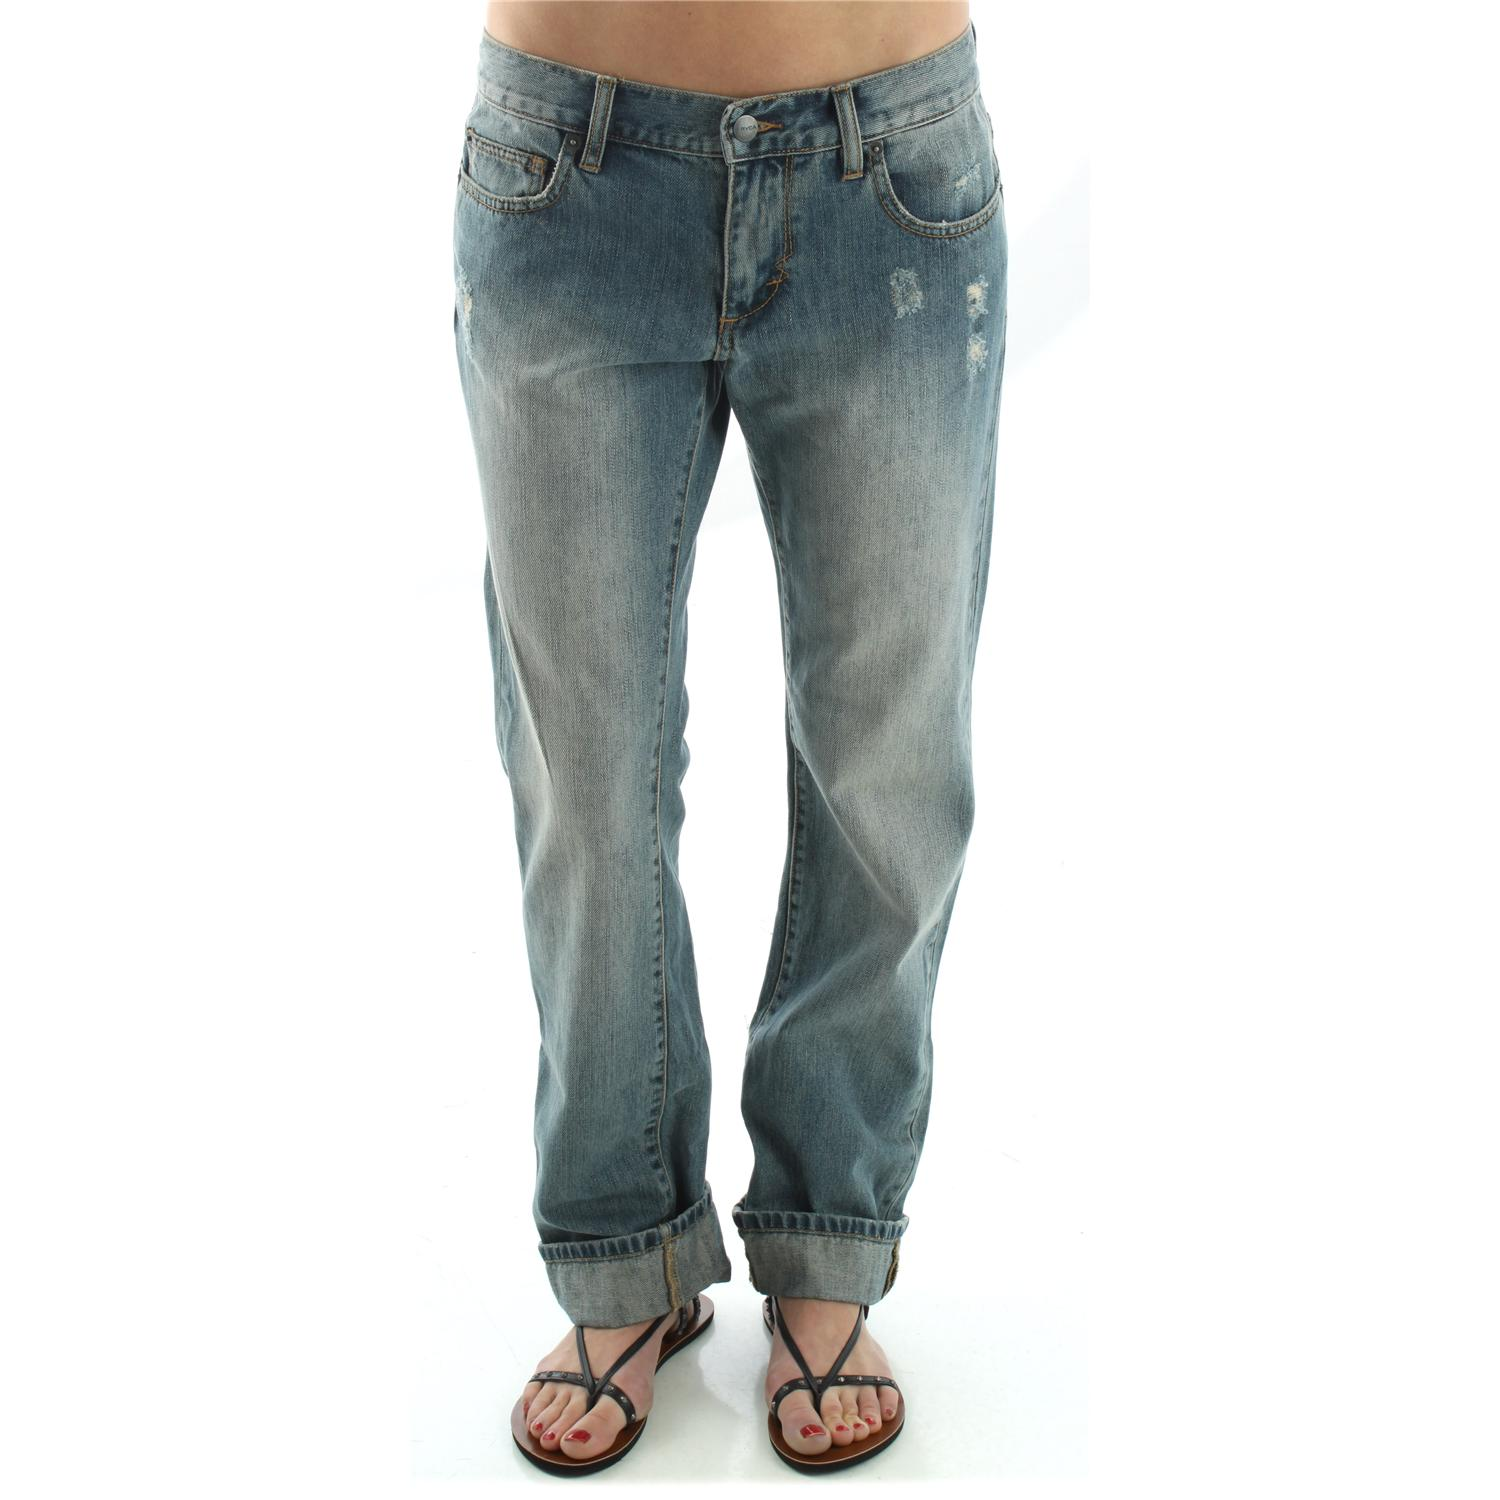 boyfriend jeans for women - photo #2